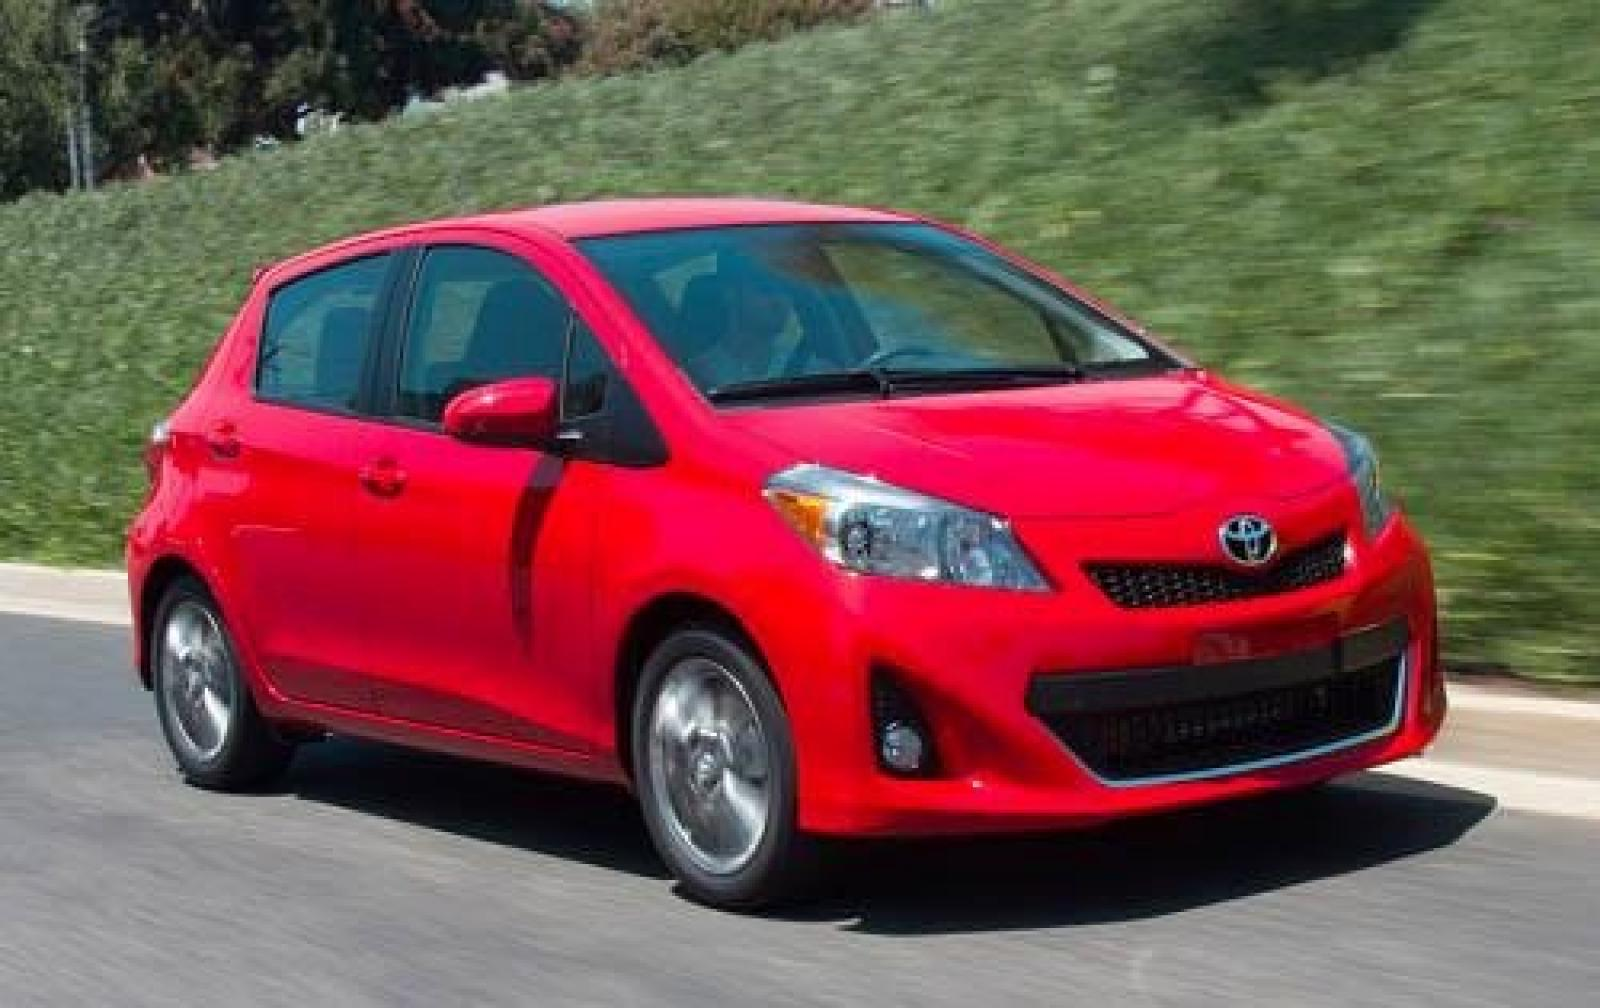 2012 toyota yaris information and photos zombiedrive. Black Bedroom Furniture Sets. Home Design Ideas